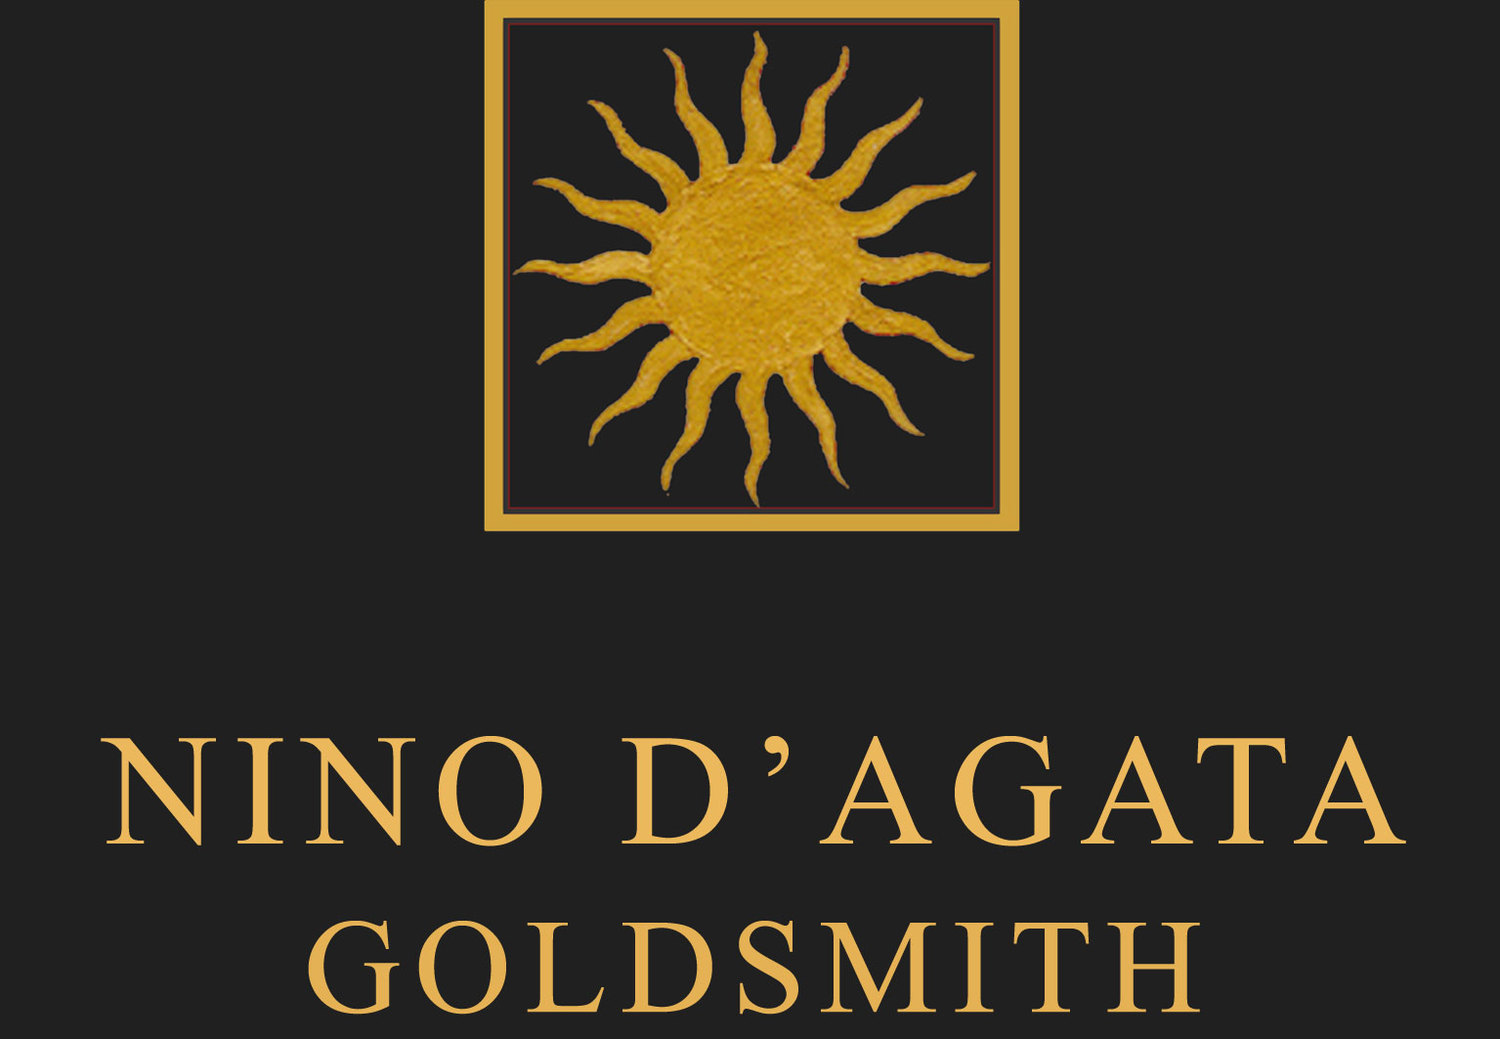 Nino D'Agata Goldsmith